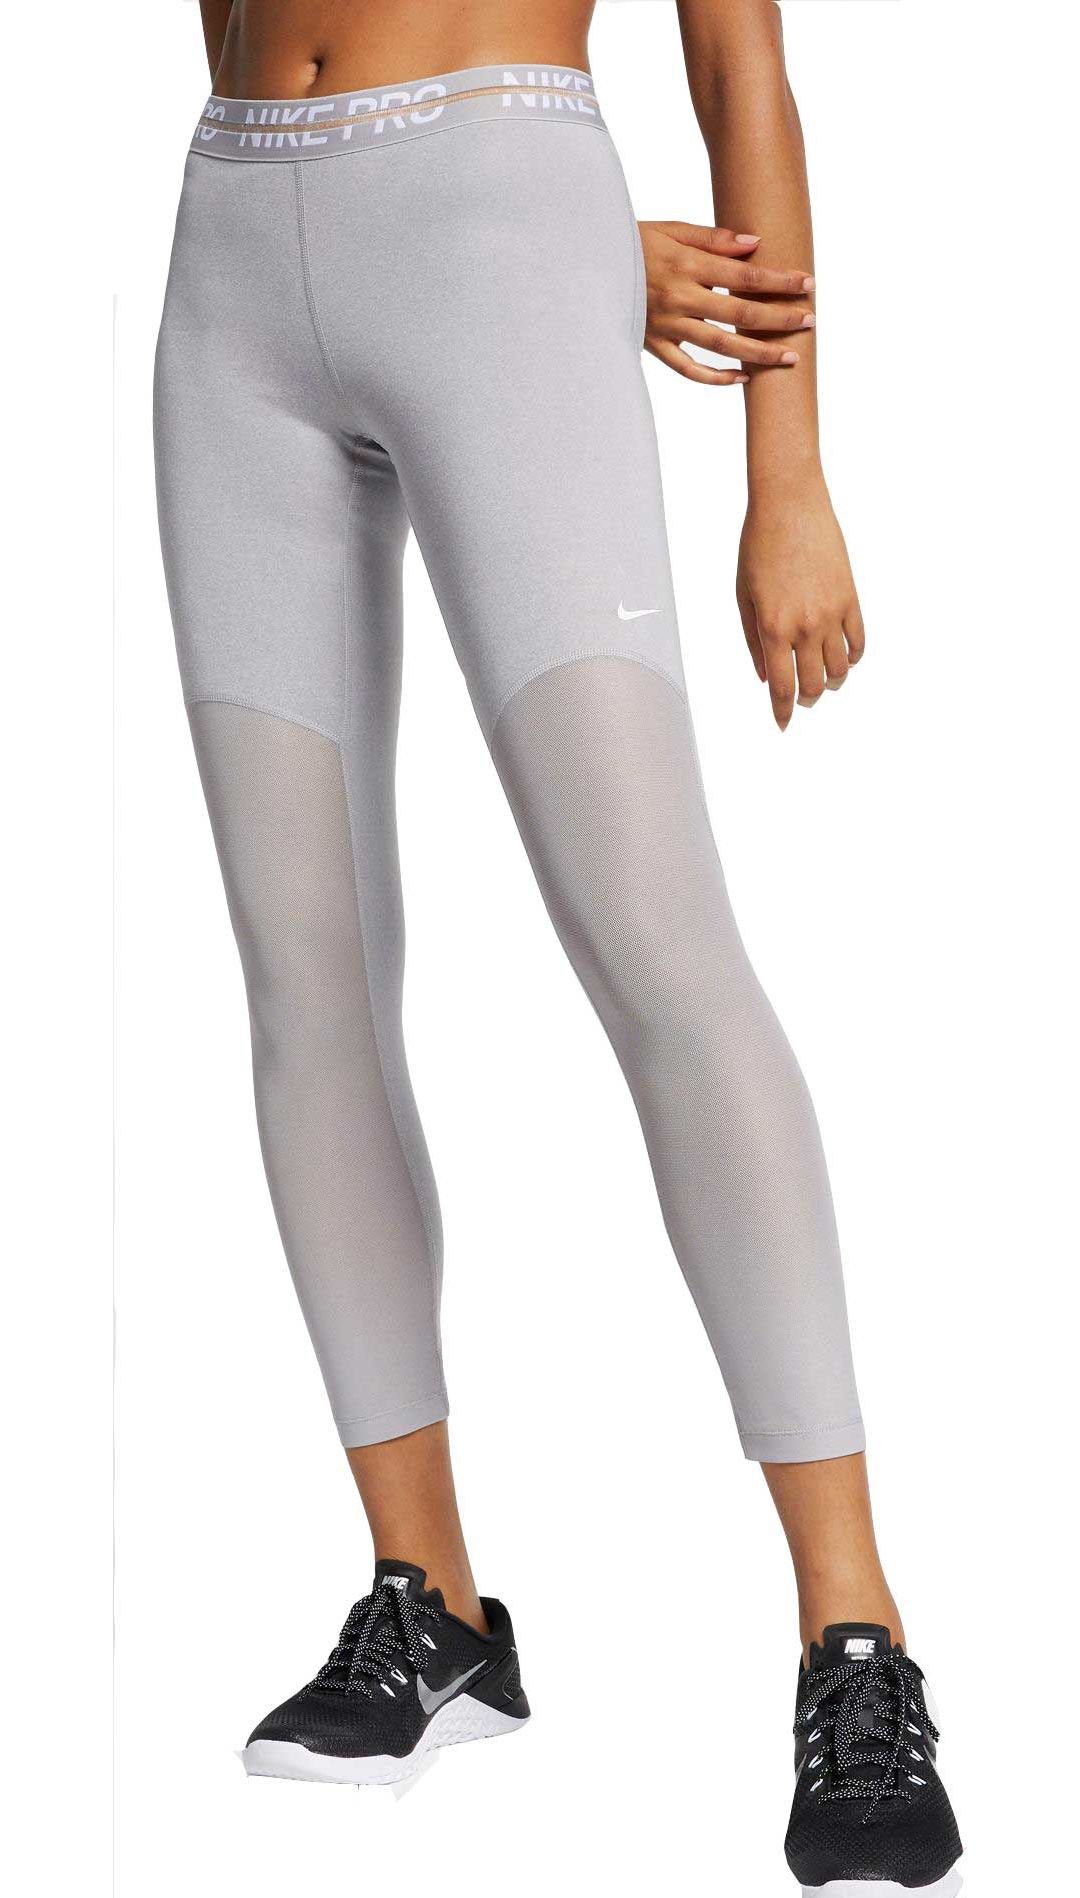 c1fe4b388d5f23 Women's Nike Pro Heatherized 7/8 Leggings. noImageFound. Previous